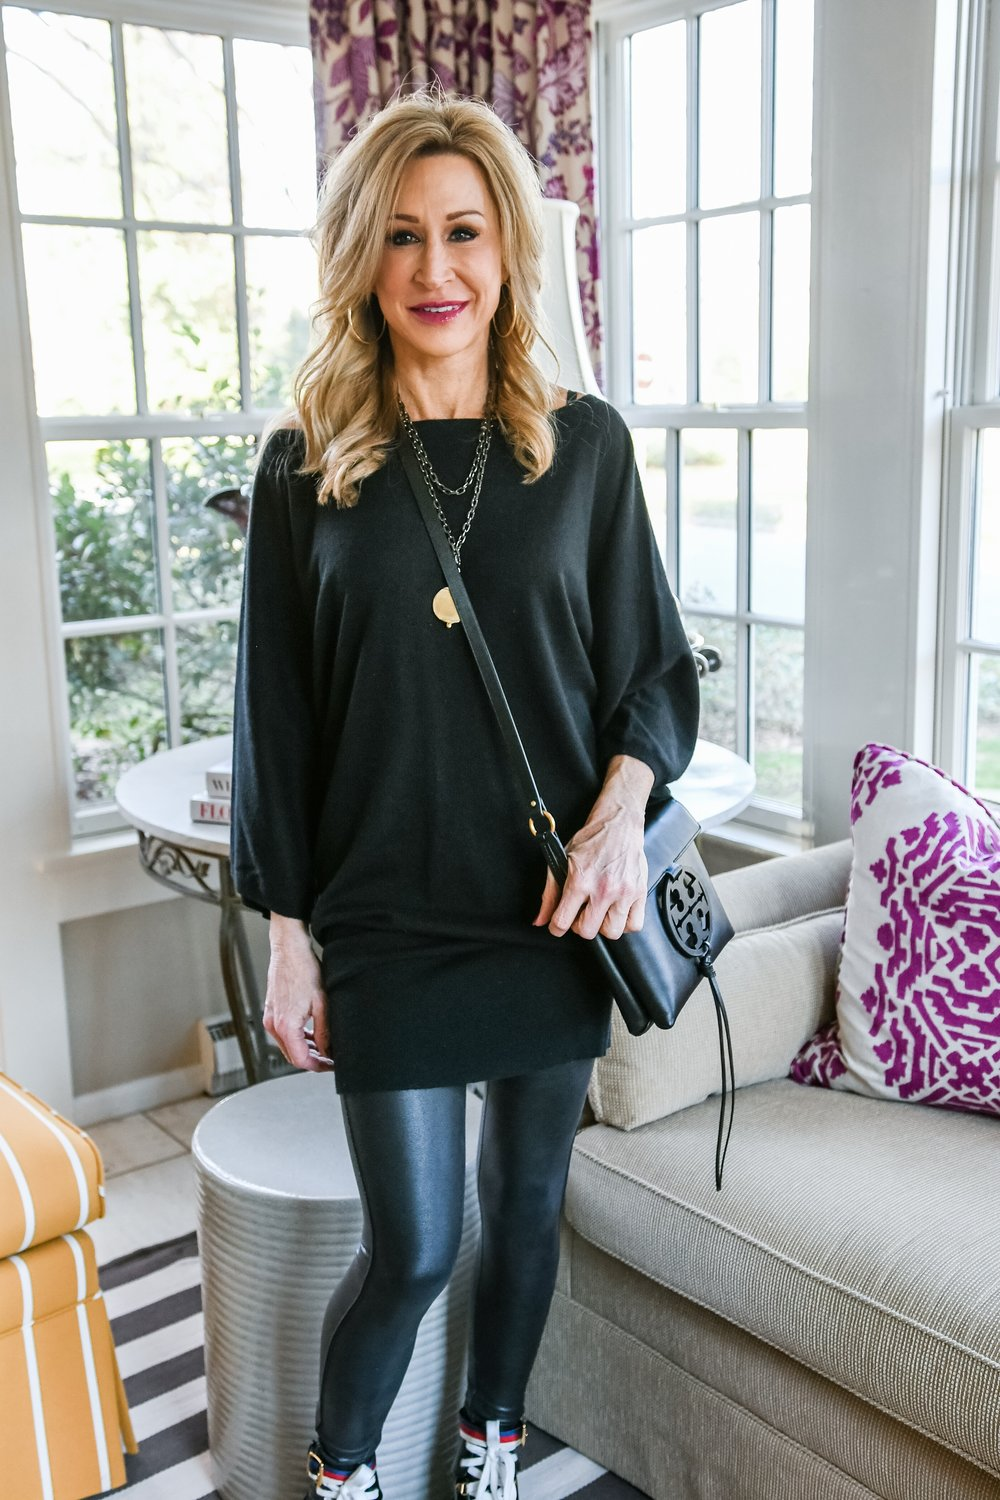 Spanx leggings with sweater dress and Gucci combat boots